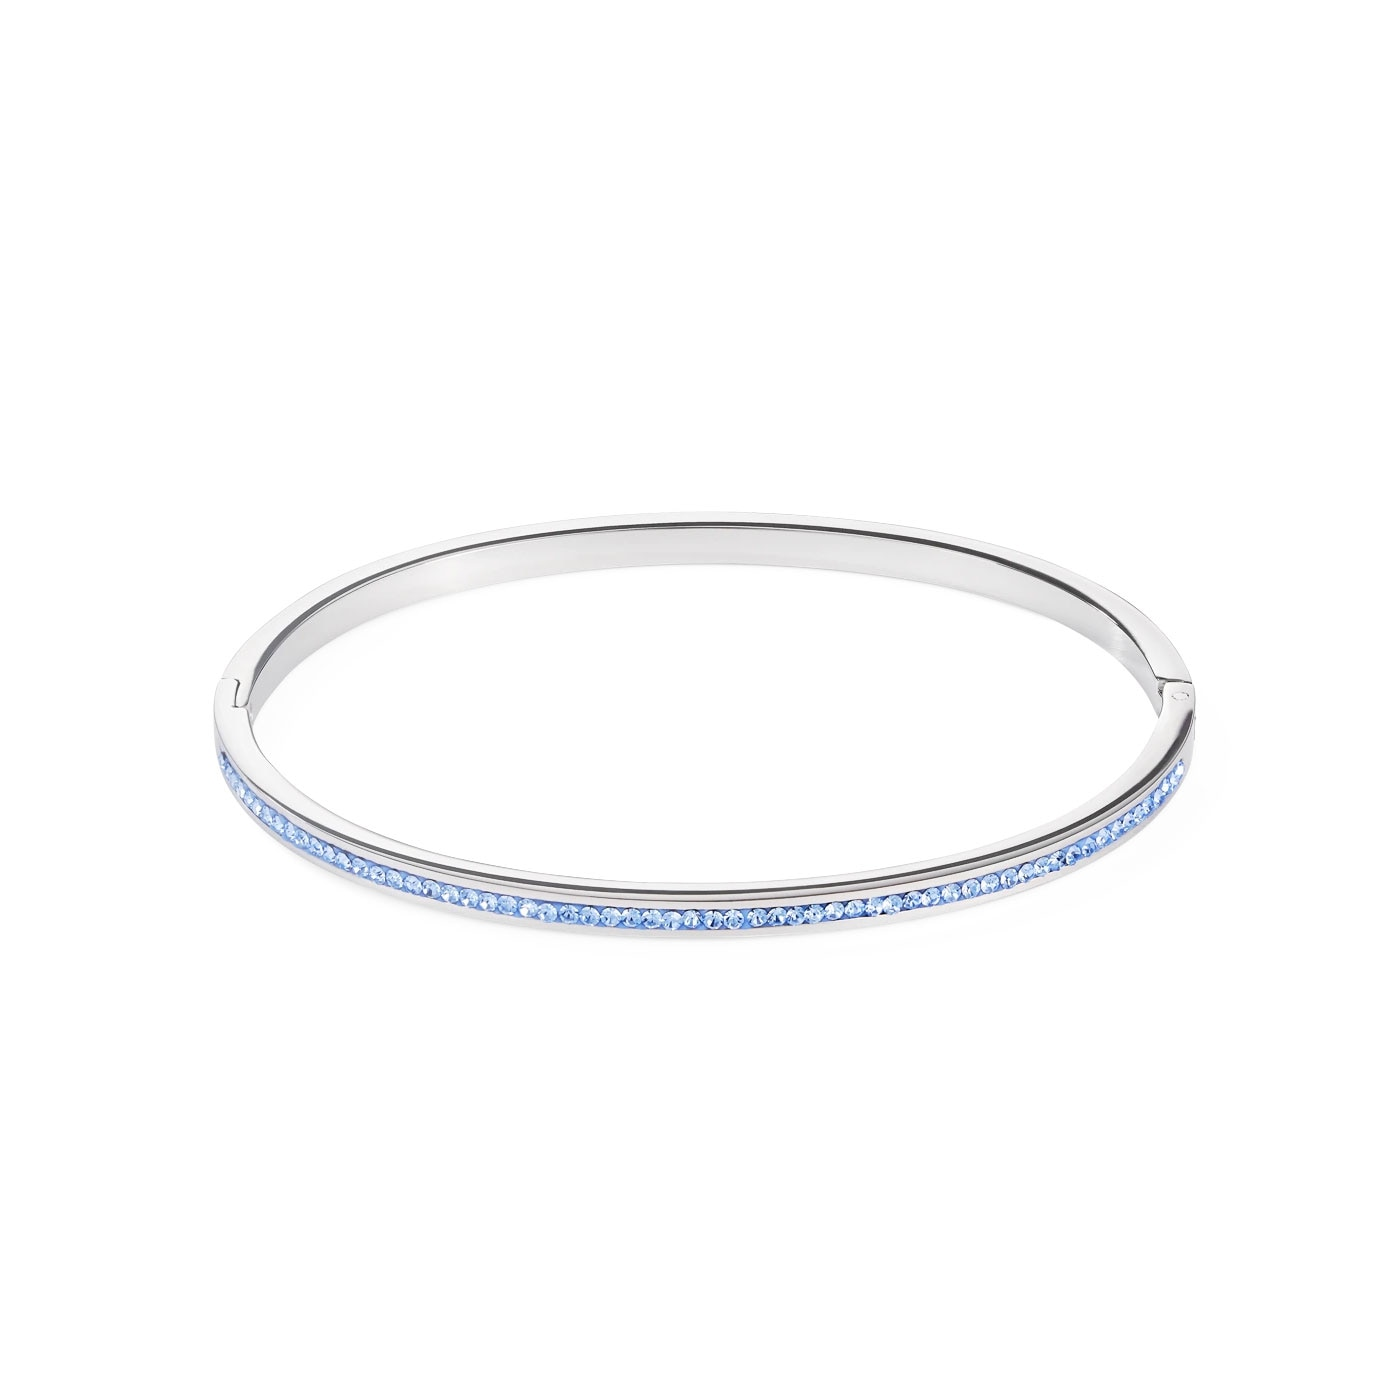 Bangle stainless steel silver & crystals pavé light blue